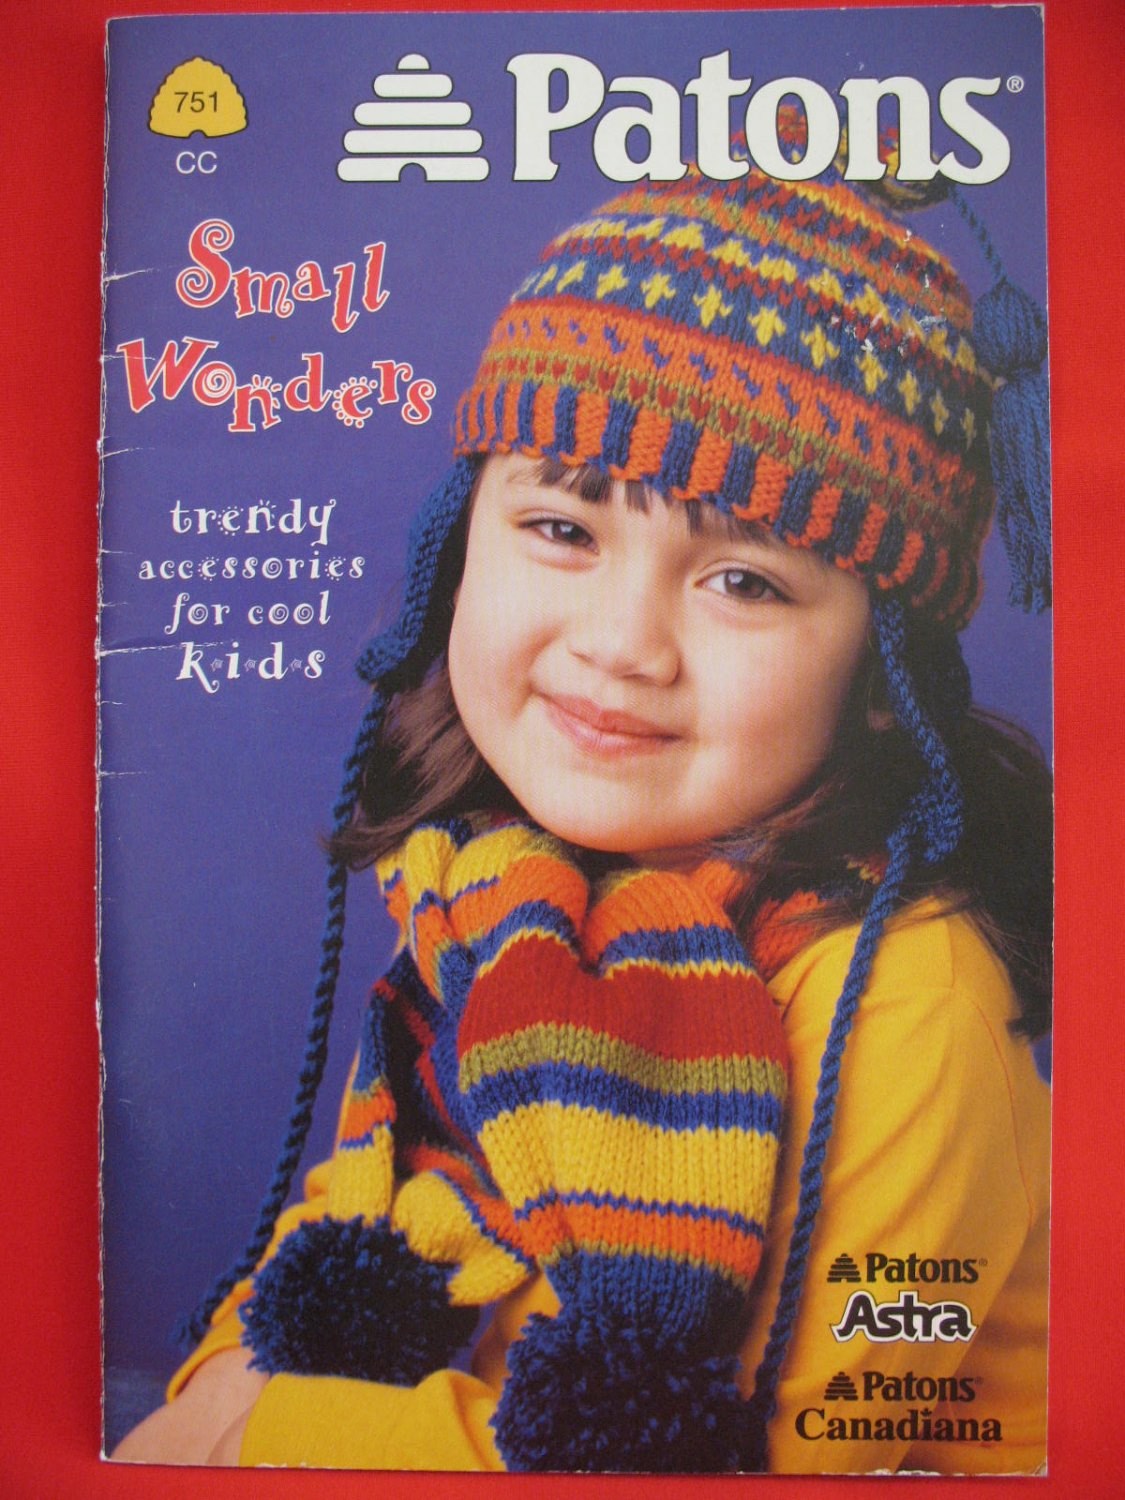 Patons Knitting Patterns Children Stocking Caps Scarves Helmets Berets Headbands Mitts